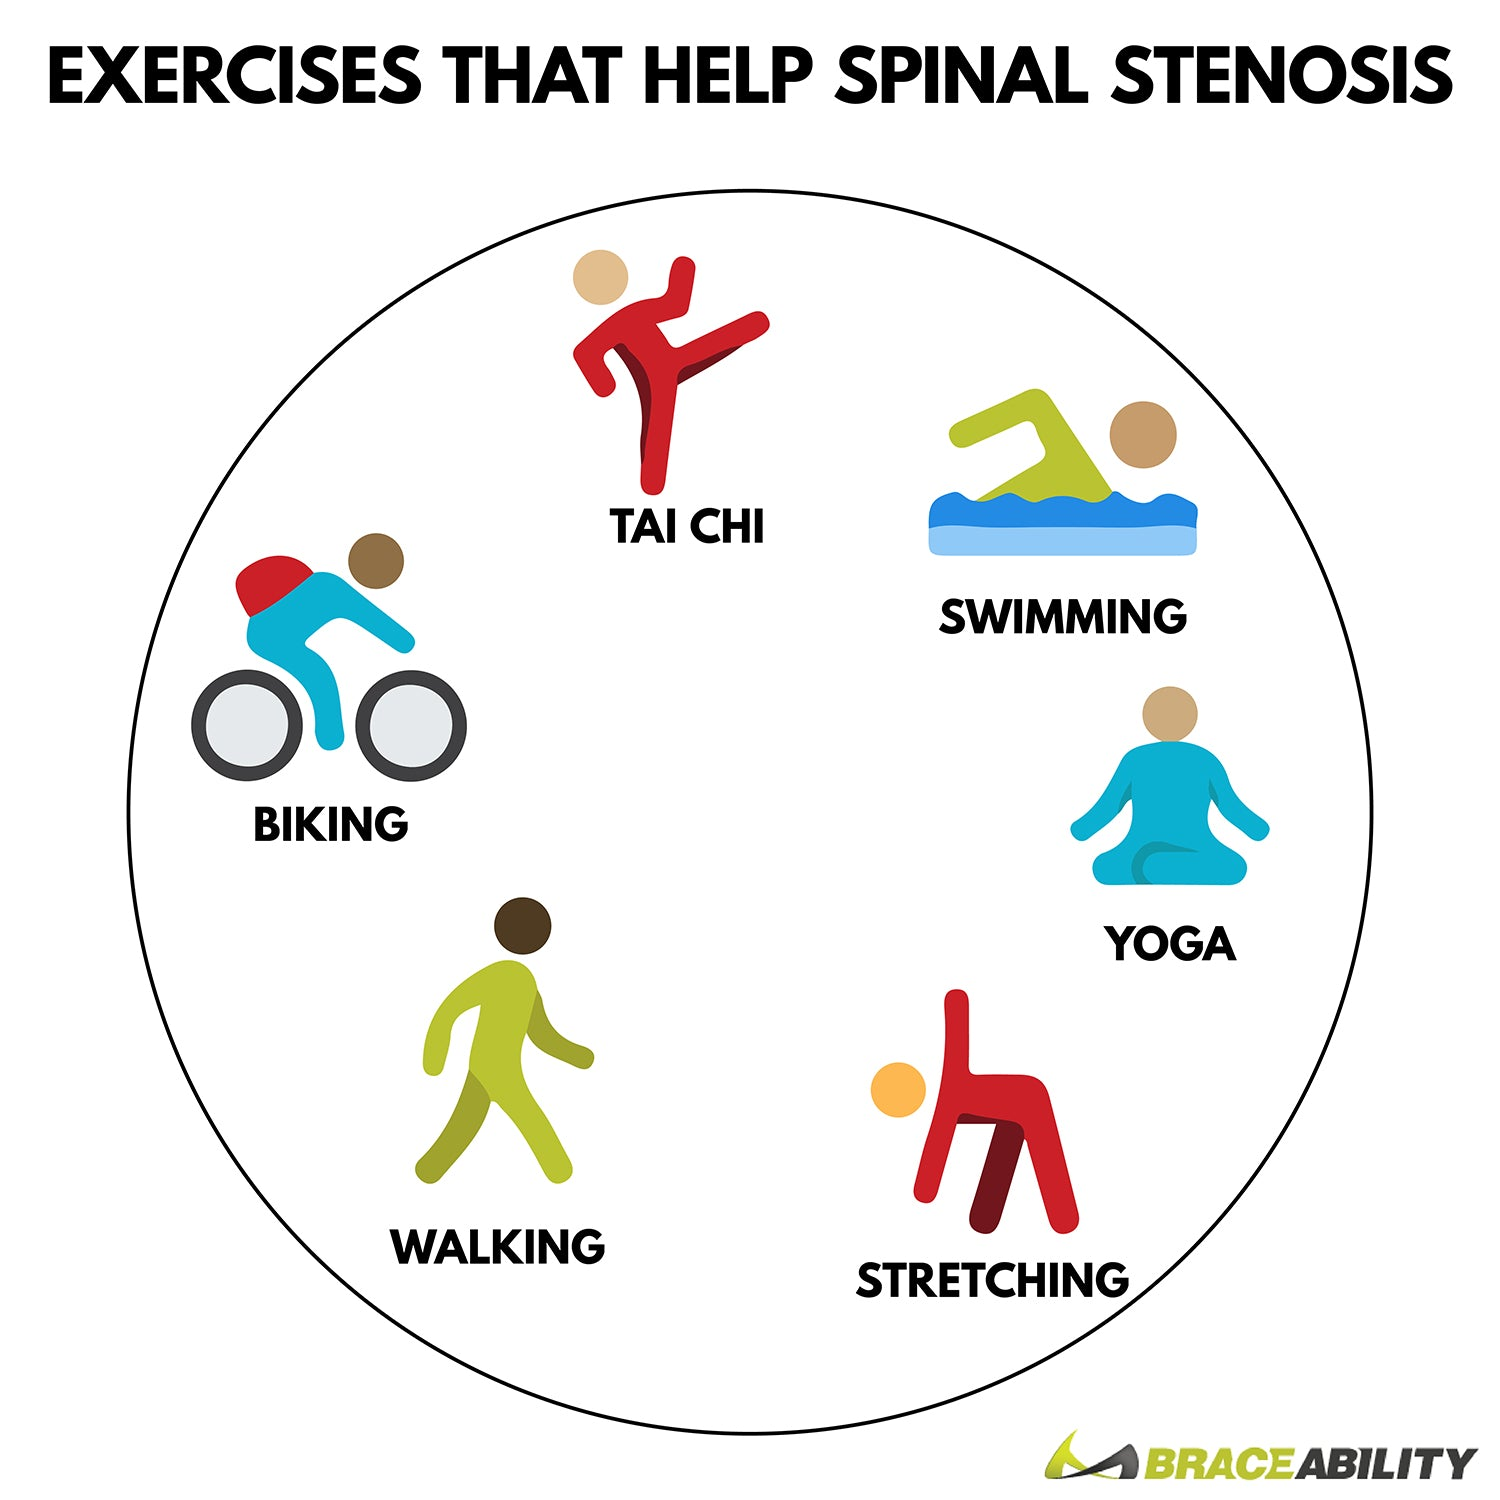 exercises that will help with leg pain from a pinched nerve or spinal stenosis